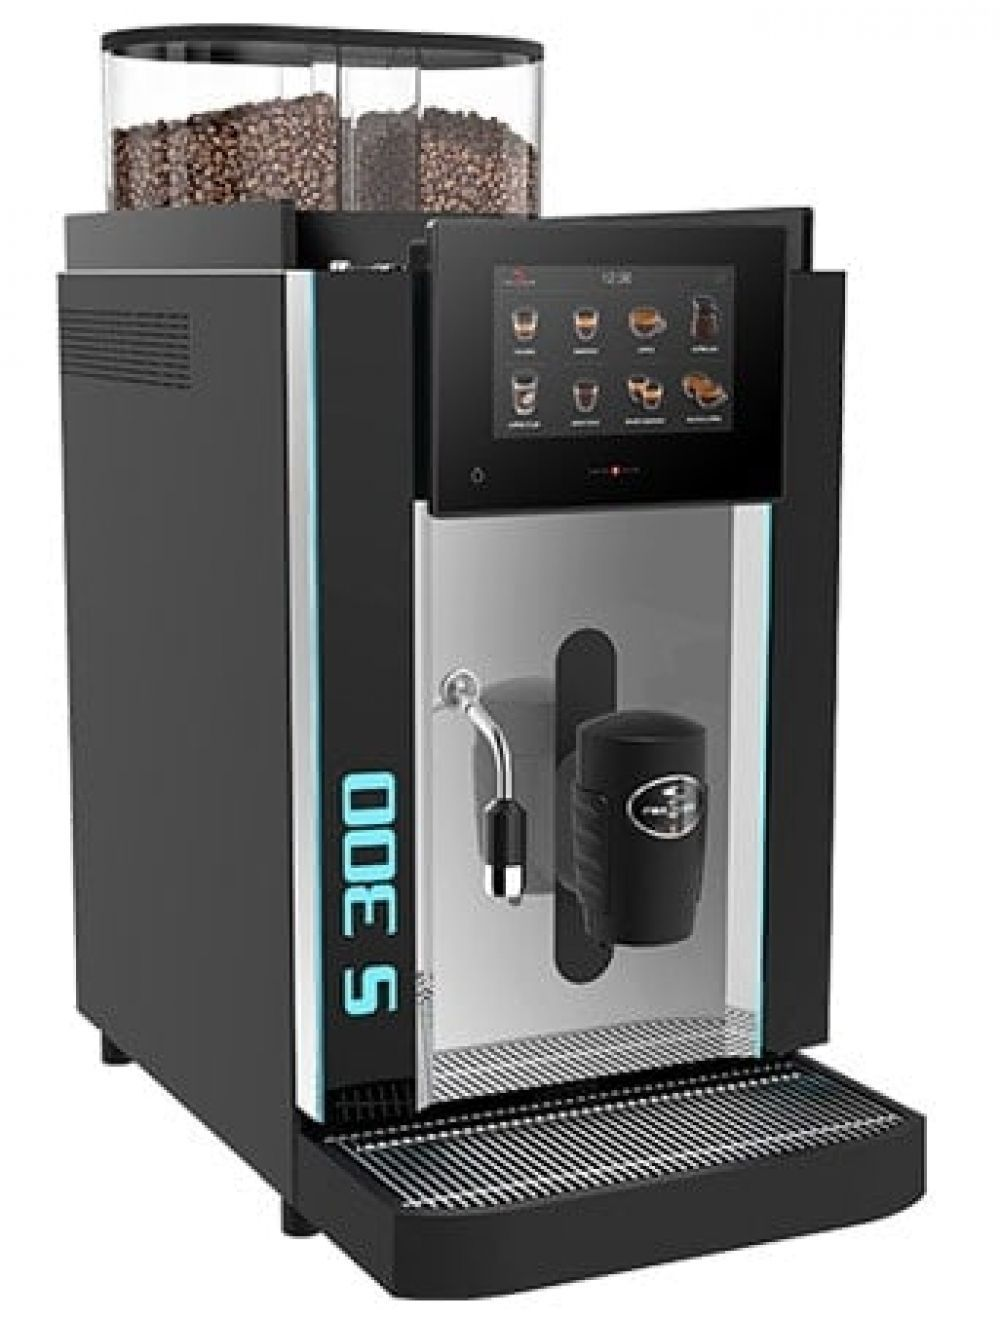 Rex Royal S300 Commercial Automatic Coffee Machine Price ...